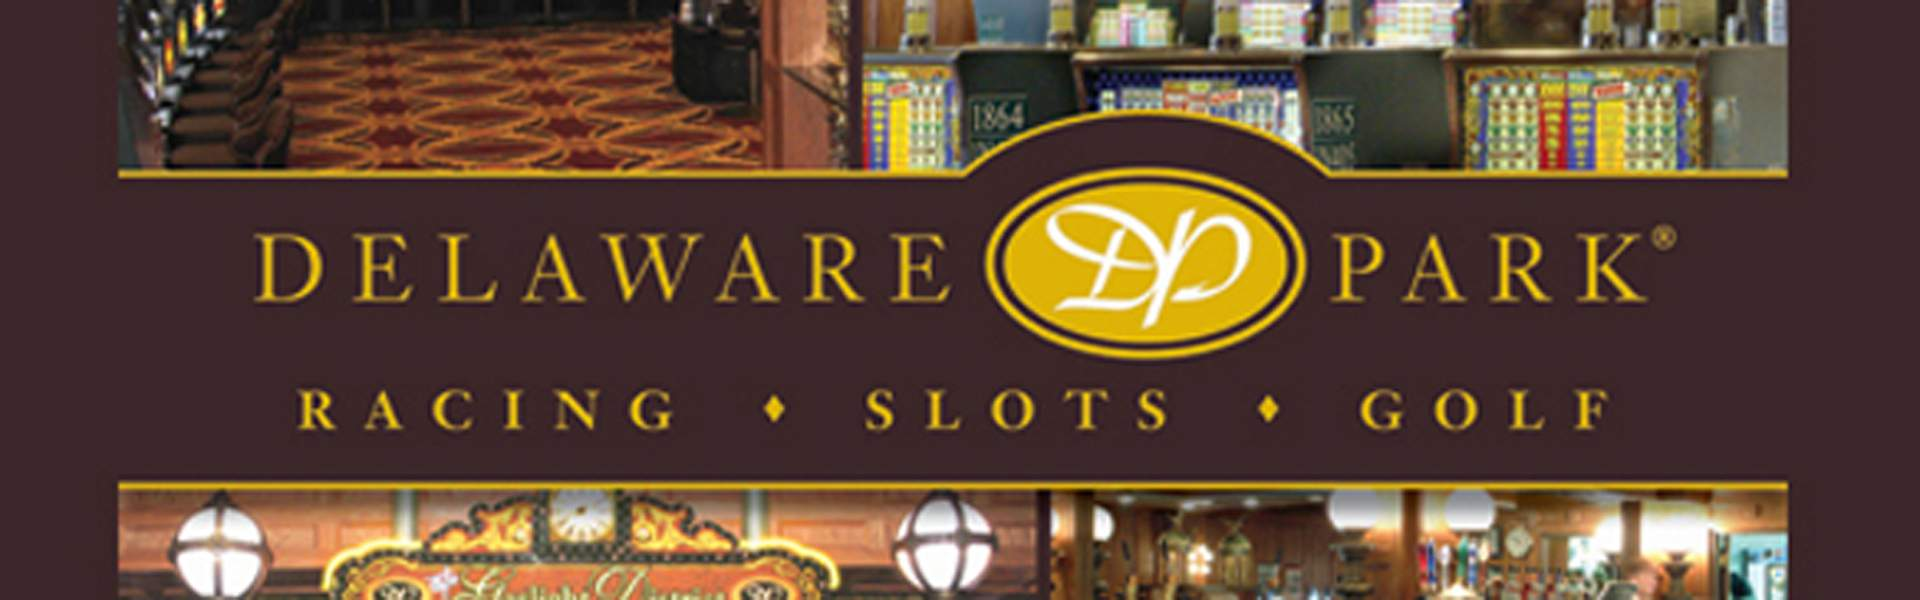 Deleware Casinos